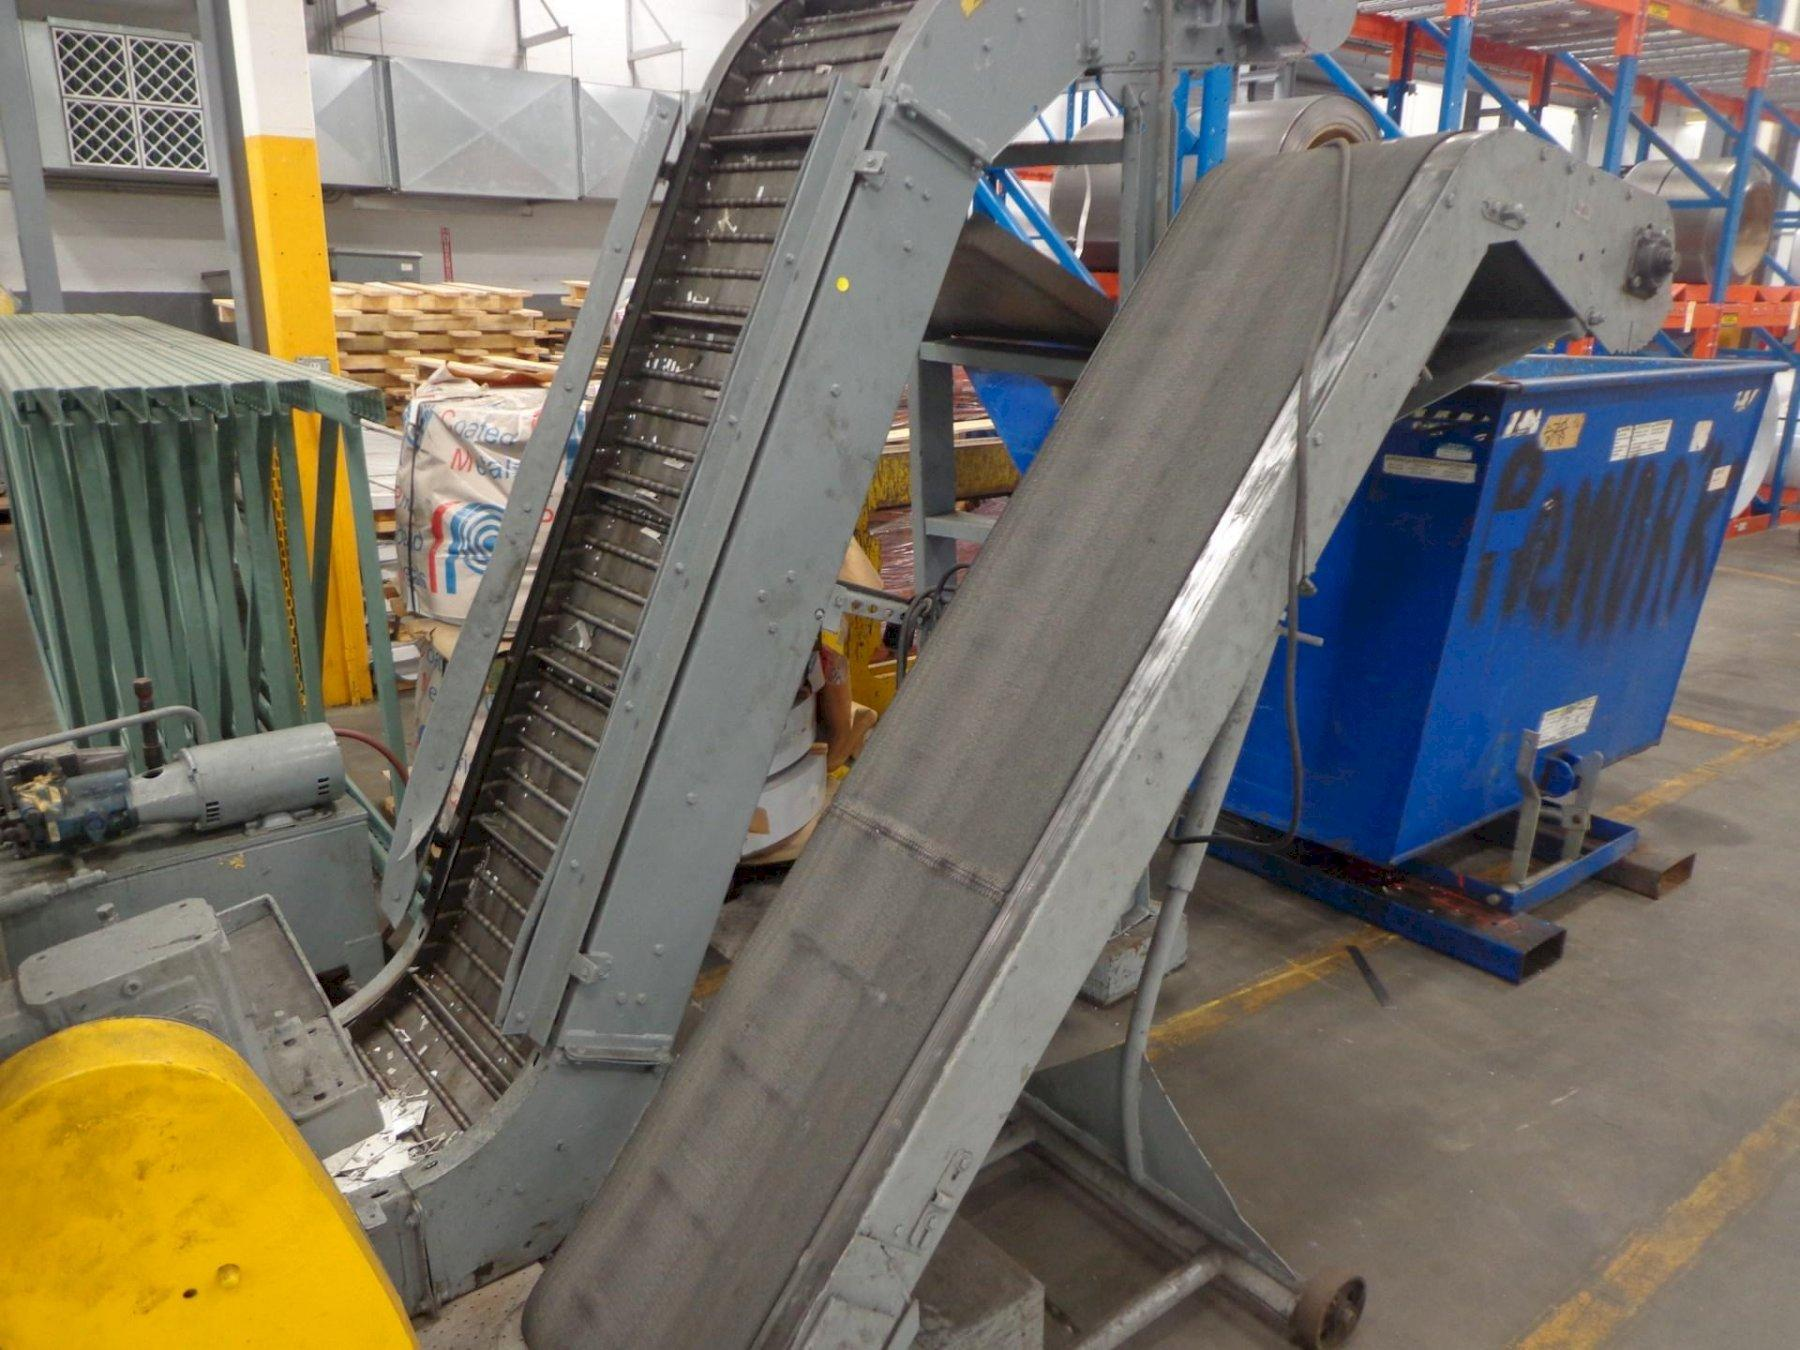 INCLINED METAL MAGNETIC BELT CONVEYOR: STOCK #12636